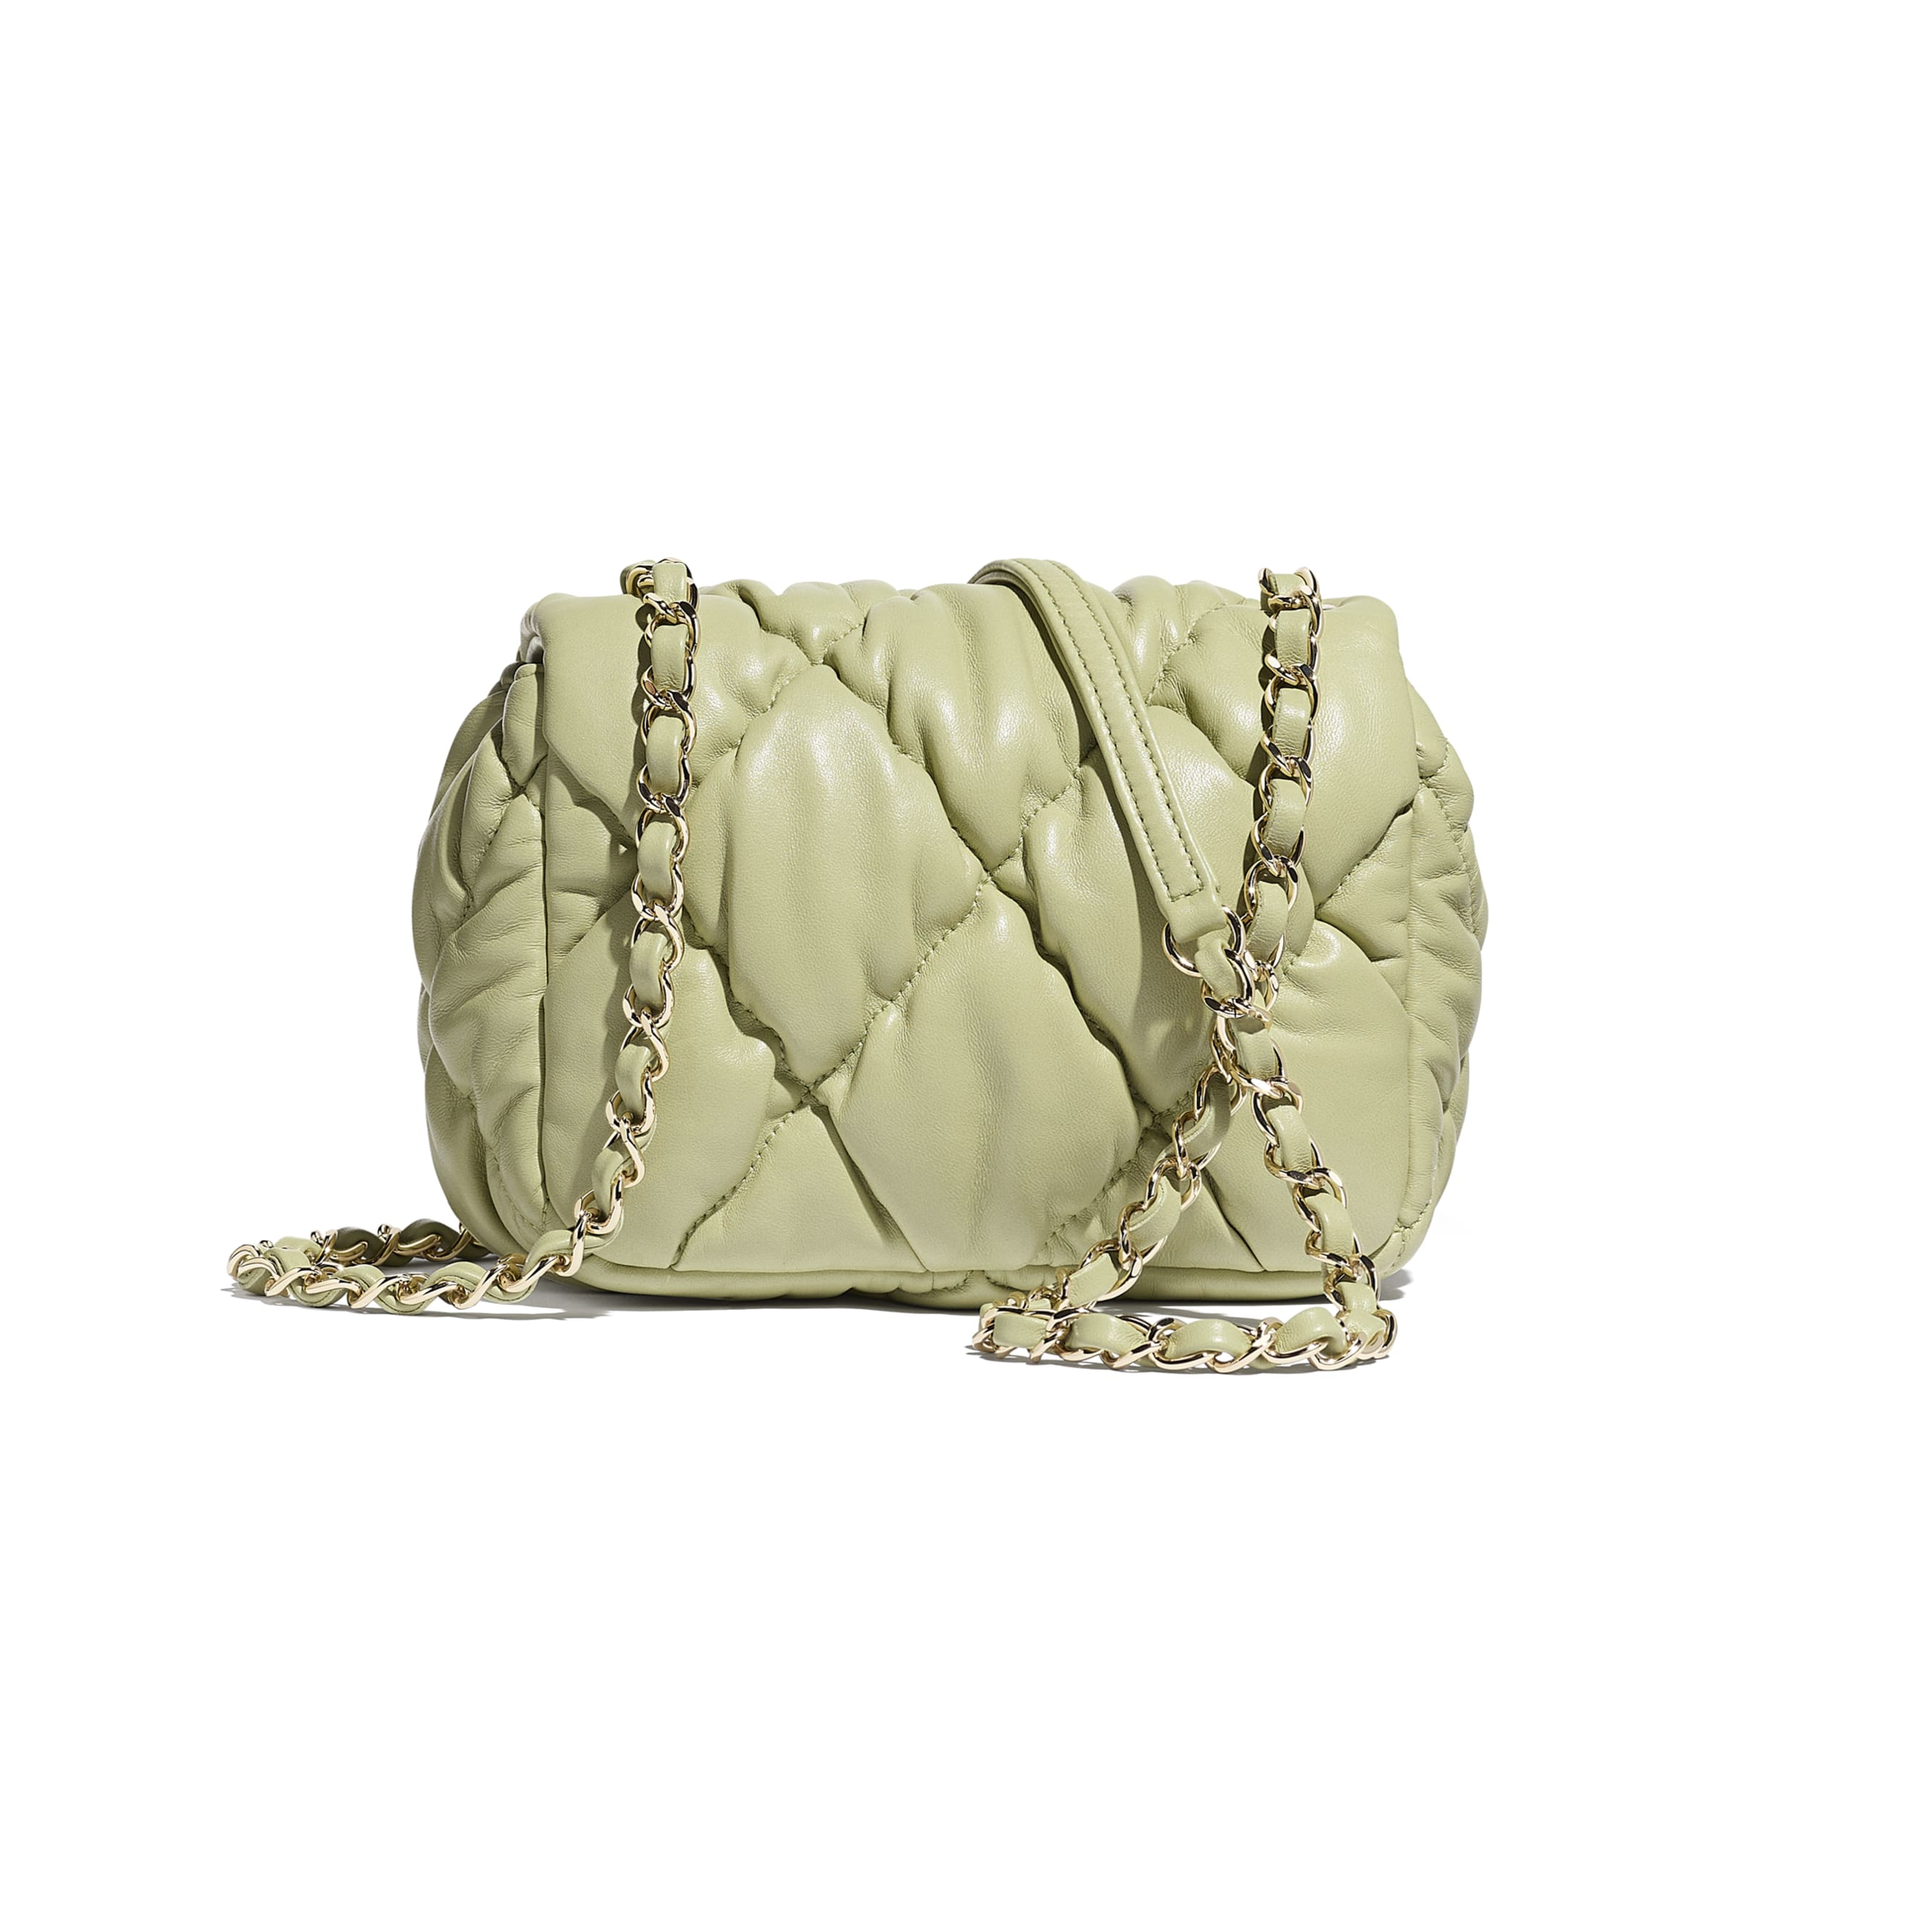 Small Flap Bag - Green - Calfskin & Gold-Tone Metal - CHANEL - Alternative view - see standard sized version